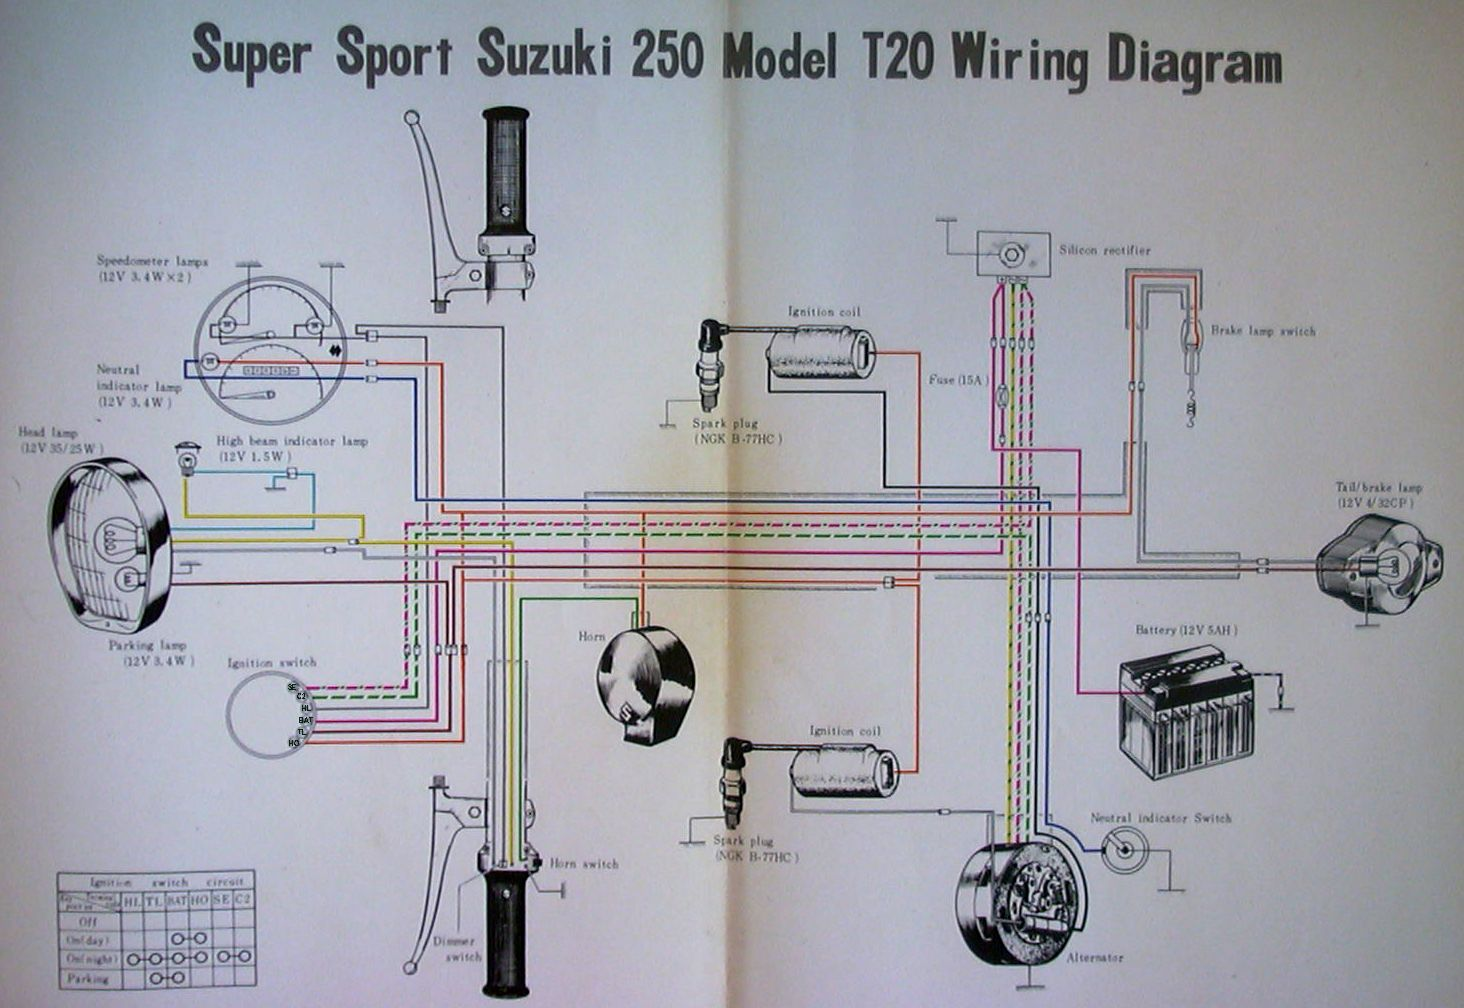 hight resolution of suzuki wiring diagram wiring diagram loadsuzuki electrical diagram wiring diagram expert suzuki samurai wiring diagram suzuki